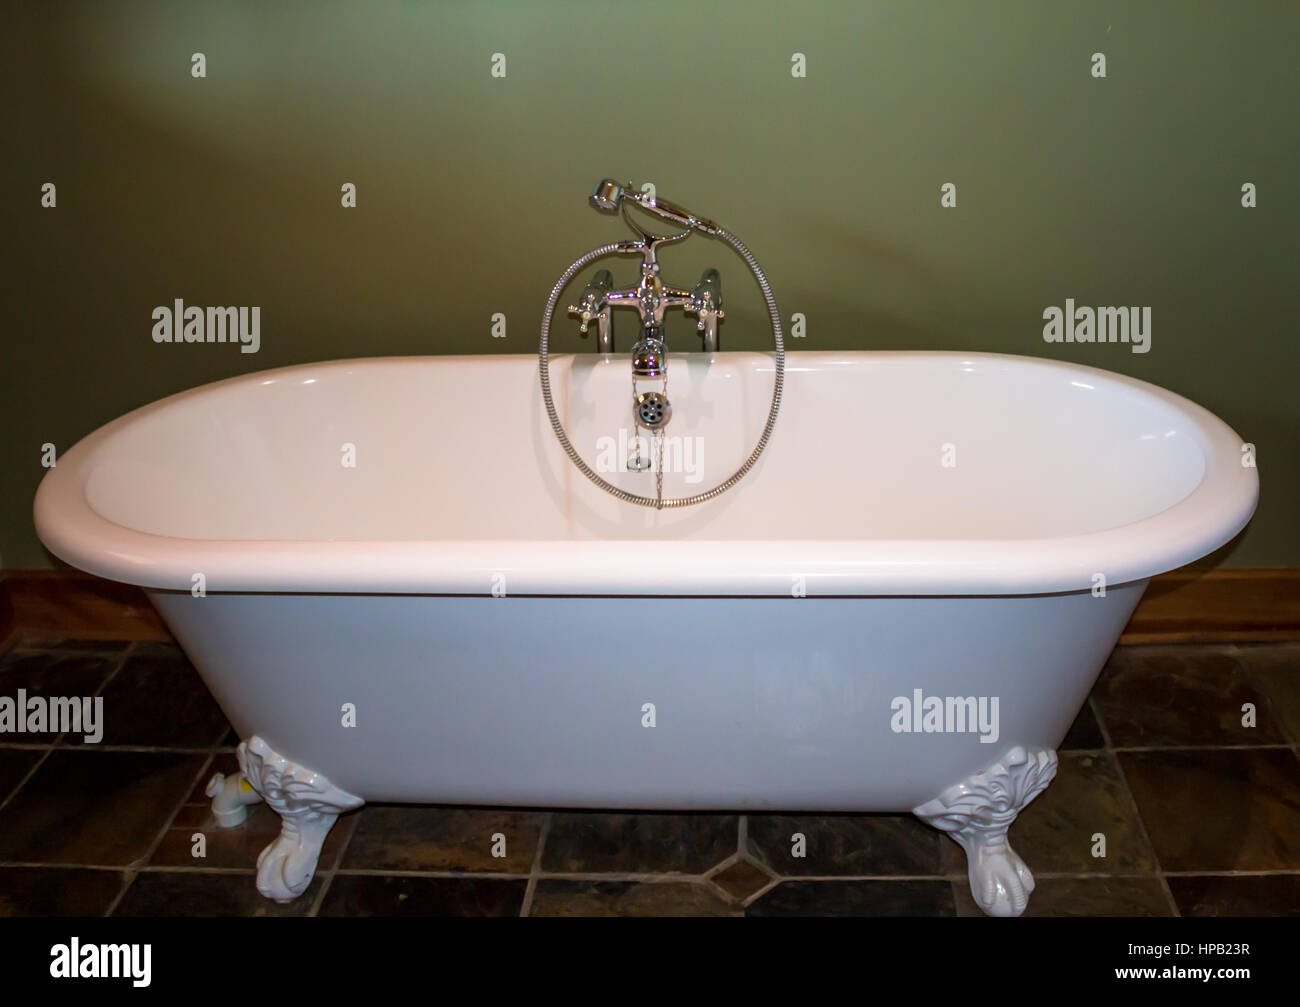 White luxury roll top bath tub against olive green background - Stock Image